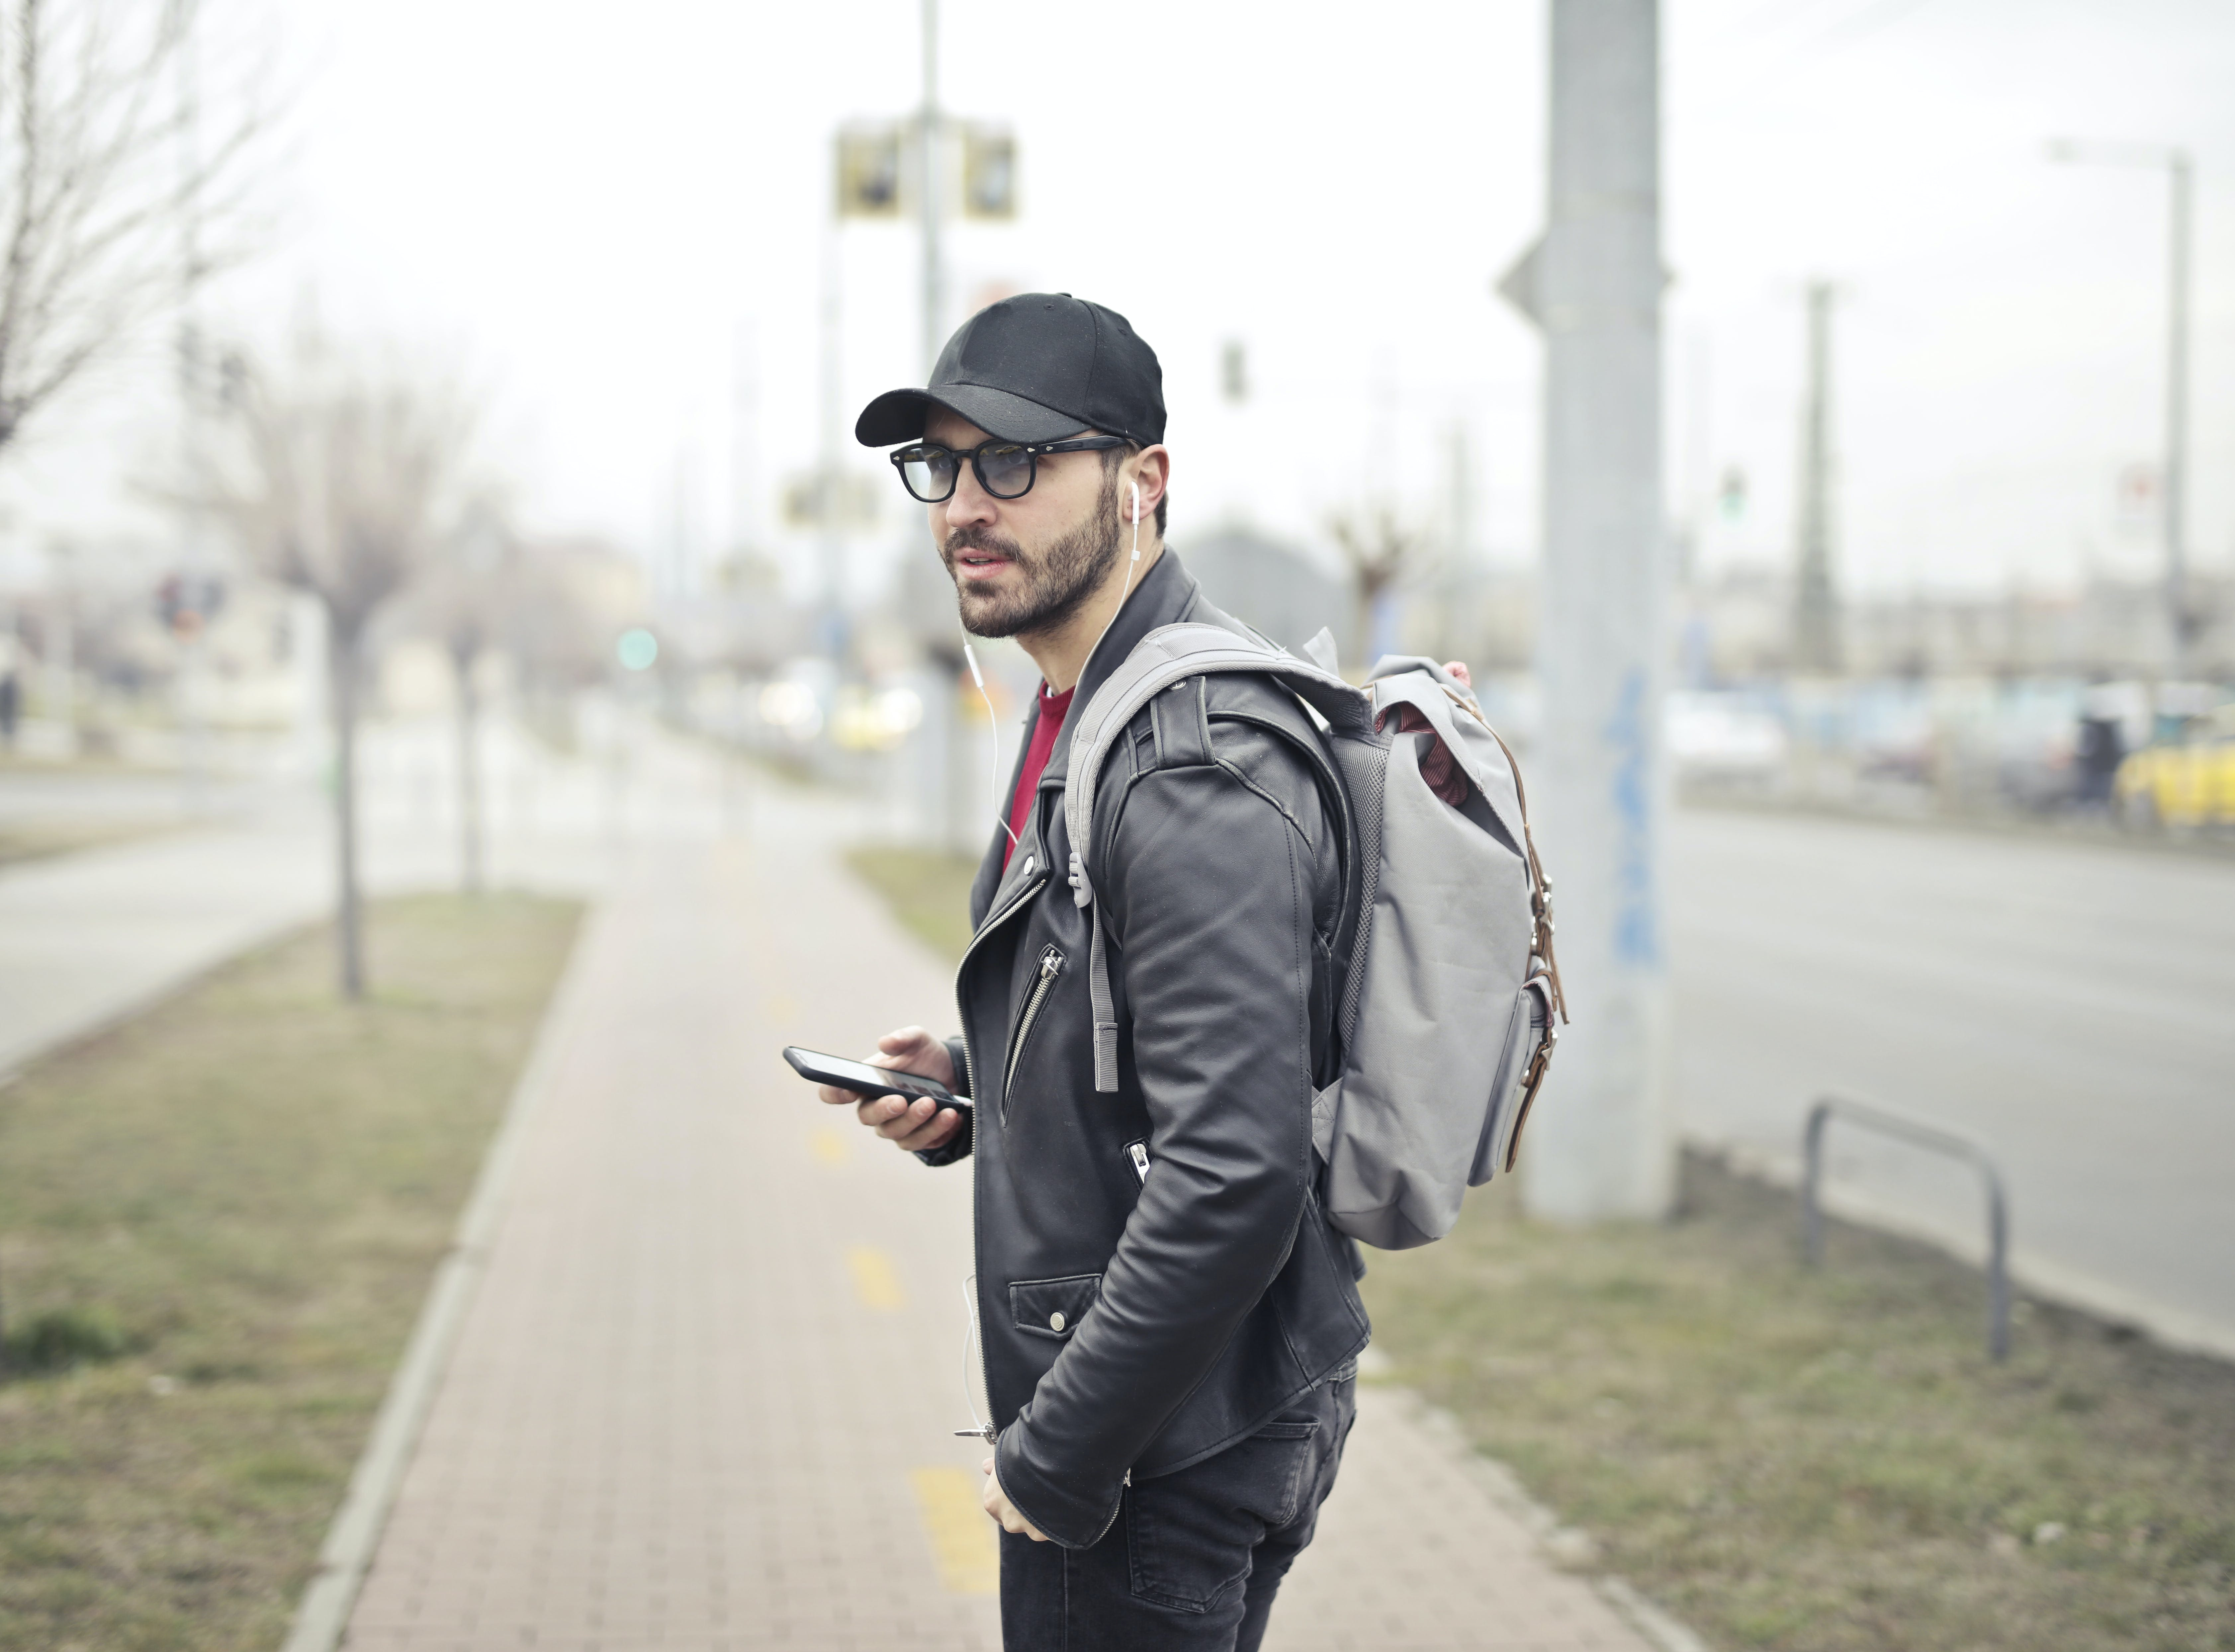 Man Wearing Black Leather Jacket Holding Smartphone